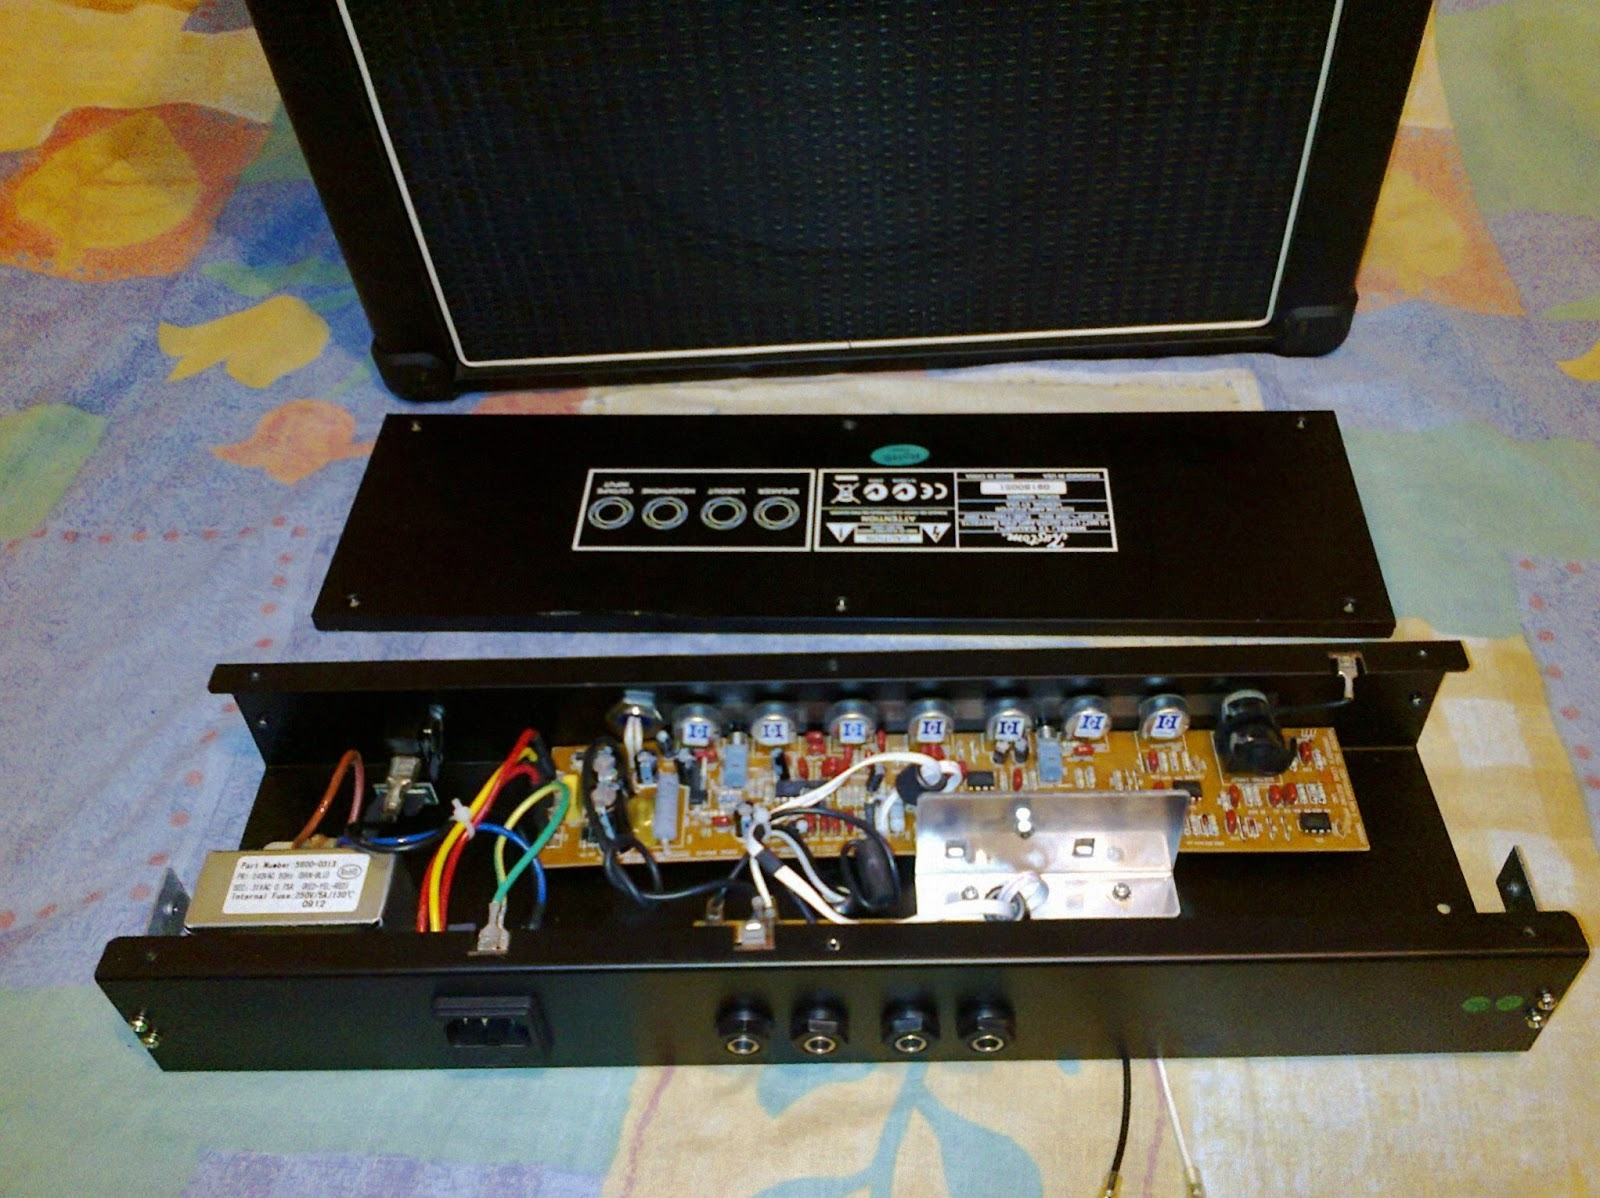 here are a few pictures of the amp: